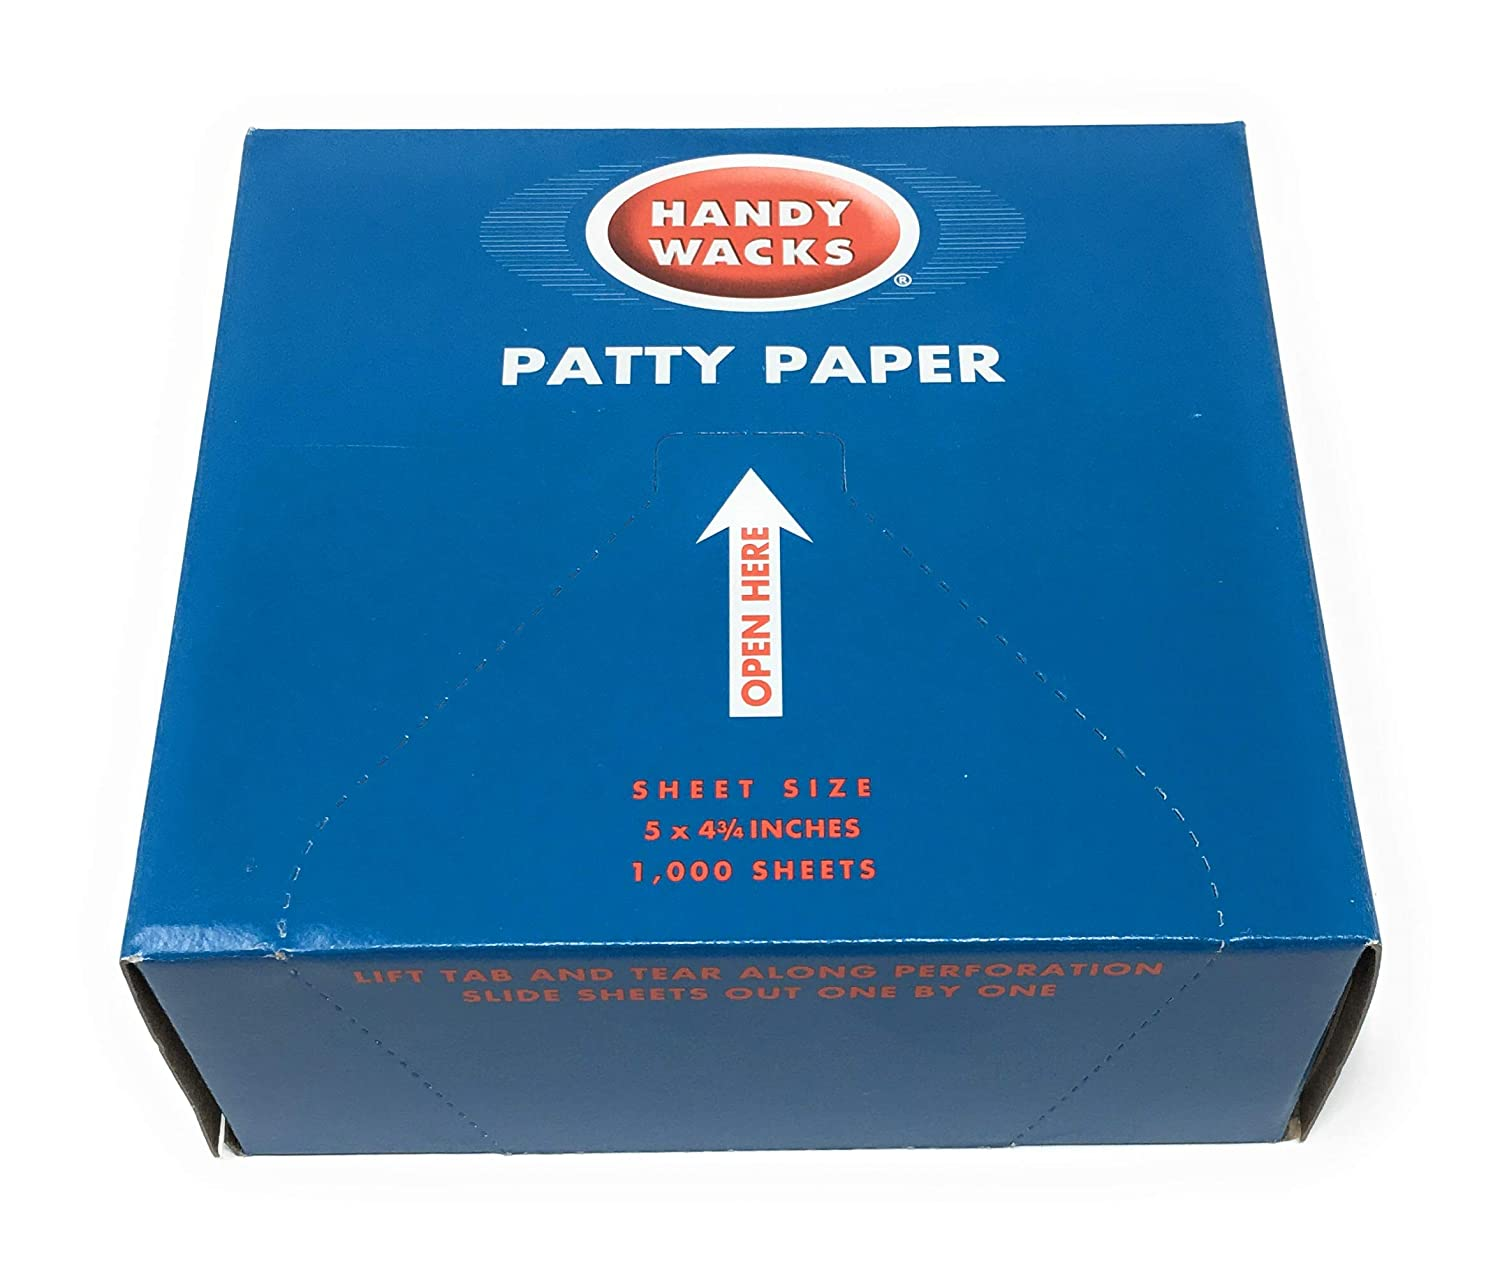 Handy Wacks P-50-X, 5x4-3/4-Inch Hamburger Patty Papers, Disposable Meat Butcher Paper Sheets, 1000-Piece Pack